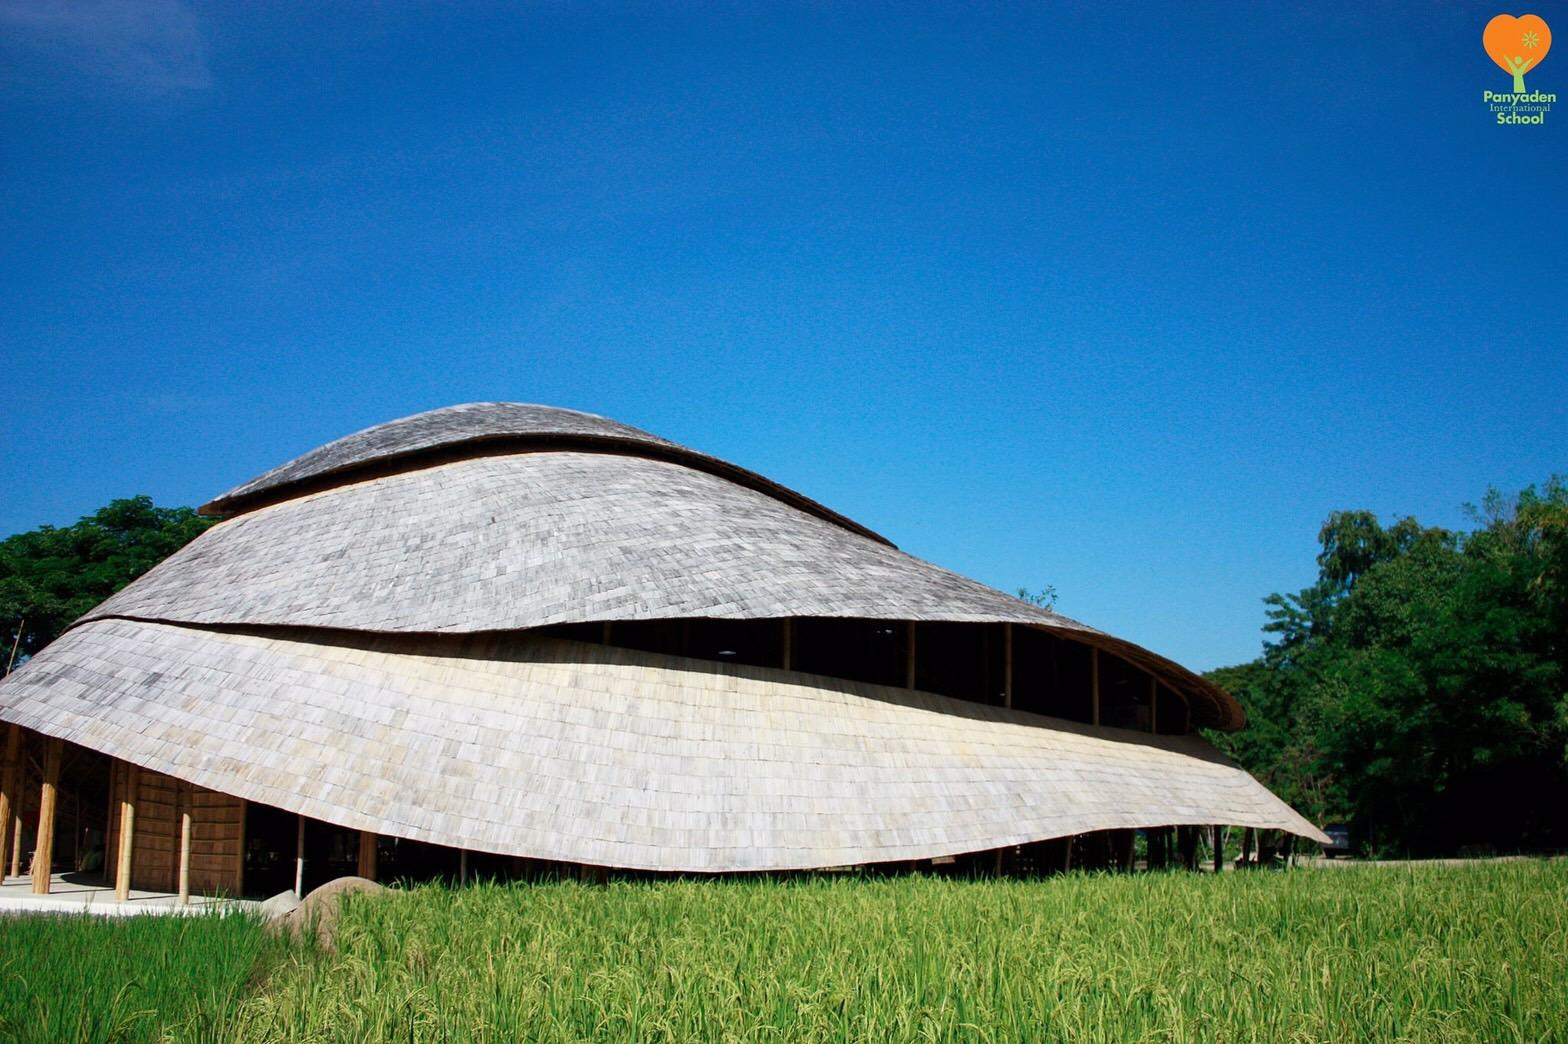 A lotus flower has inspired the form of the new sports facility / Chiangmai Life Construction